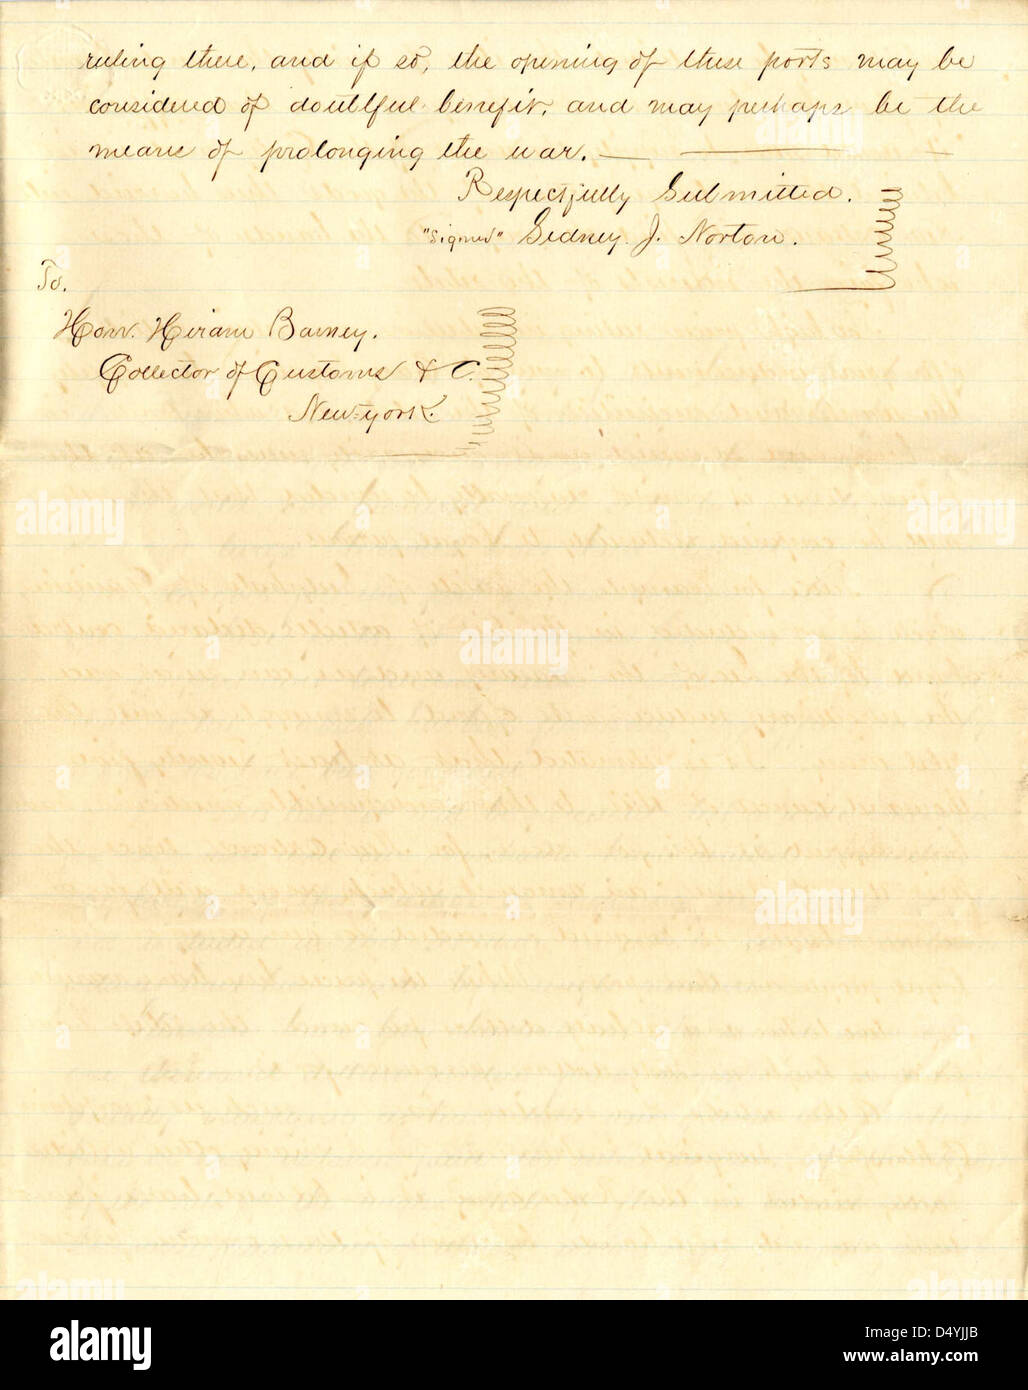 letter from sidney j norton to ciran barney new york collector of